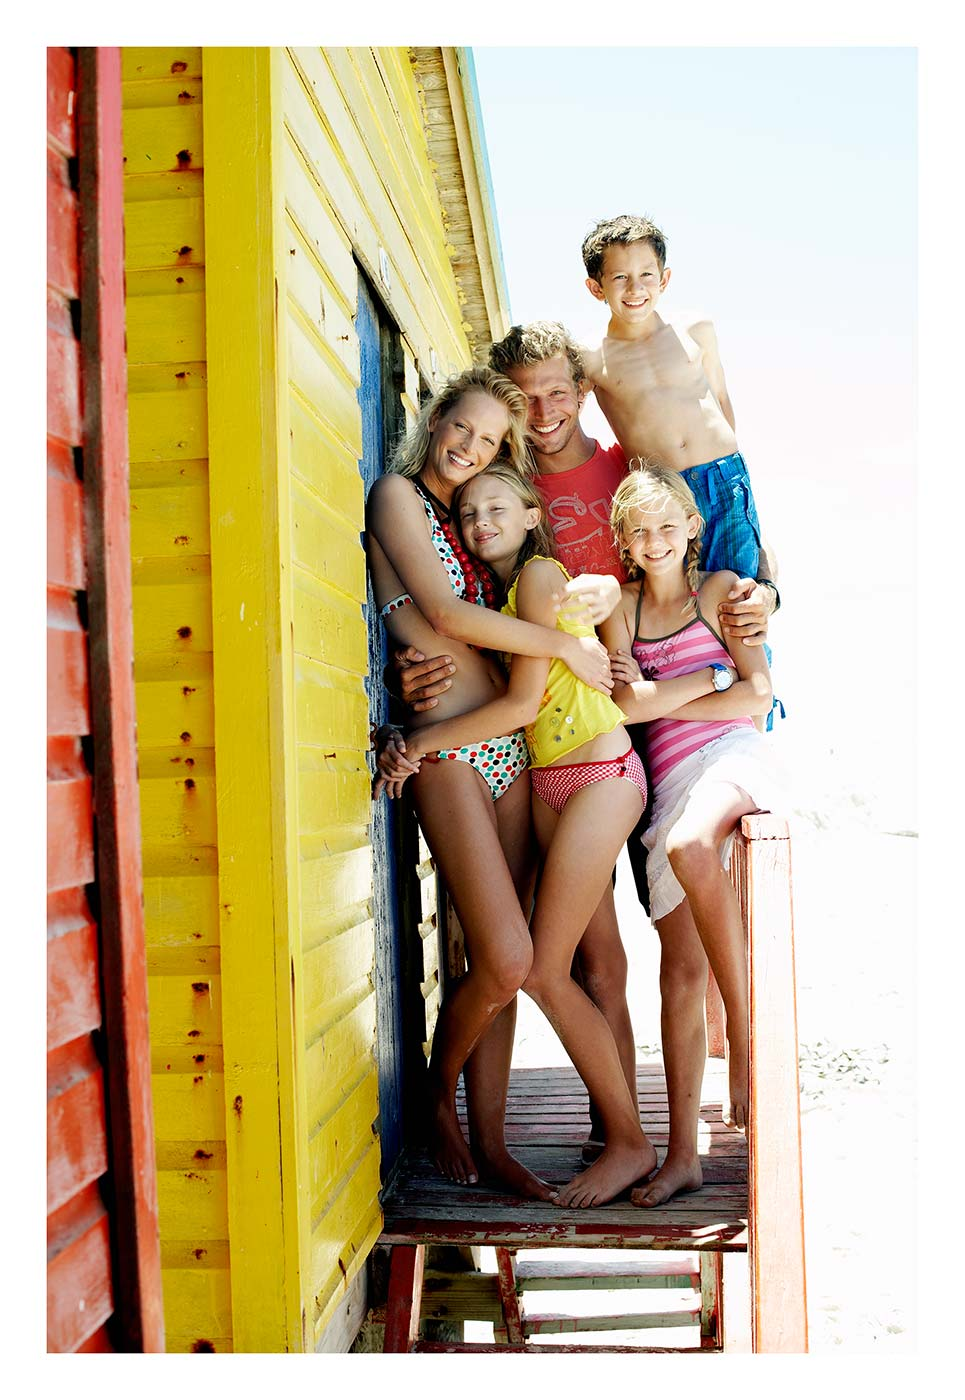 7_Family&Beach_Hut-004724-copy